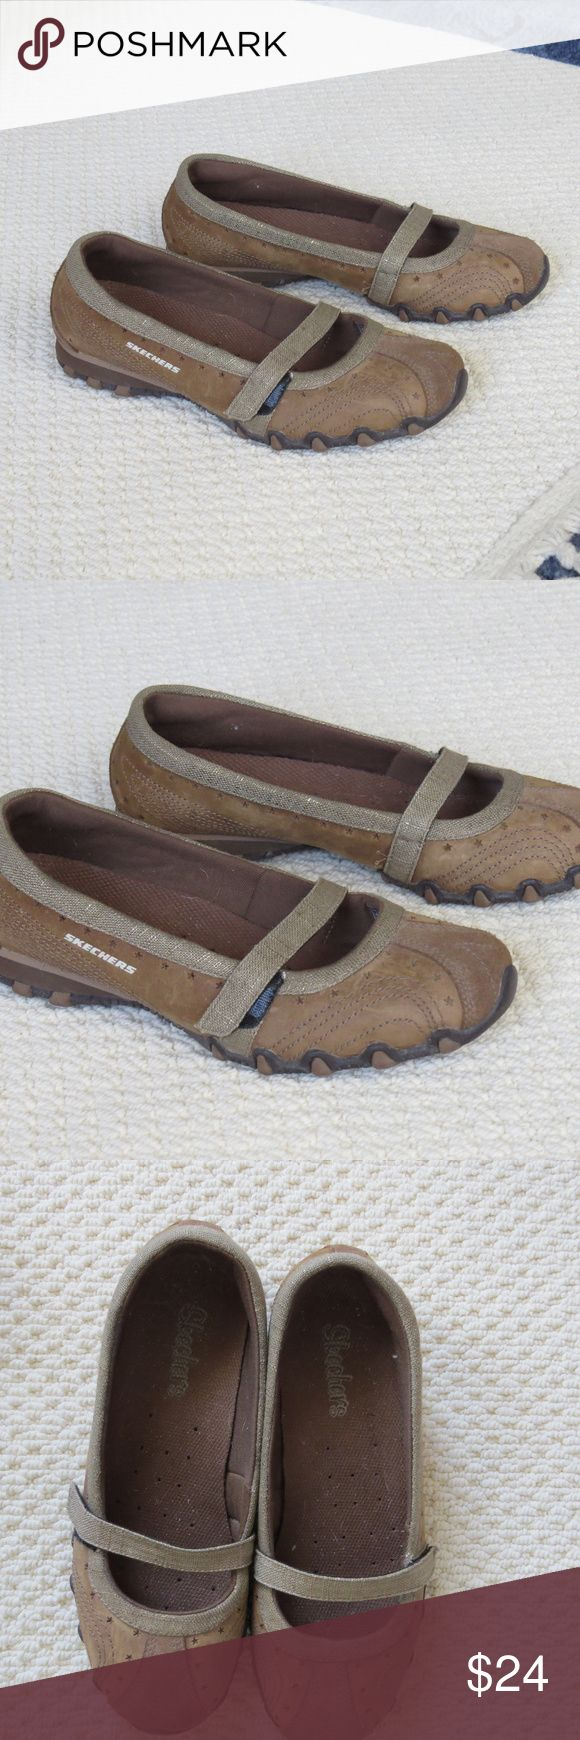 Skechers Mary Jane Flats Shoes Brown Sz 6.5 EUC Skechers Shoes Sz 6.5 Womens Mary Jane Ballet Flat Loafer Brown Leather Excellent Used Condition Skechers Shoes Flats & Loafers